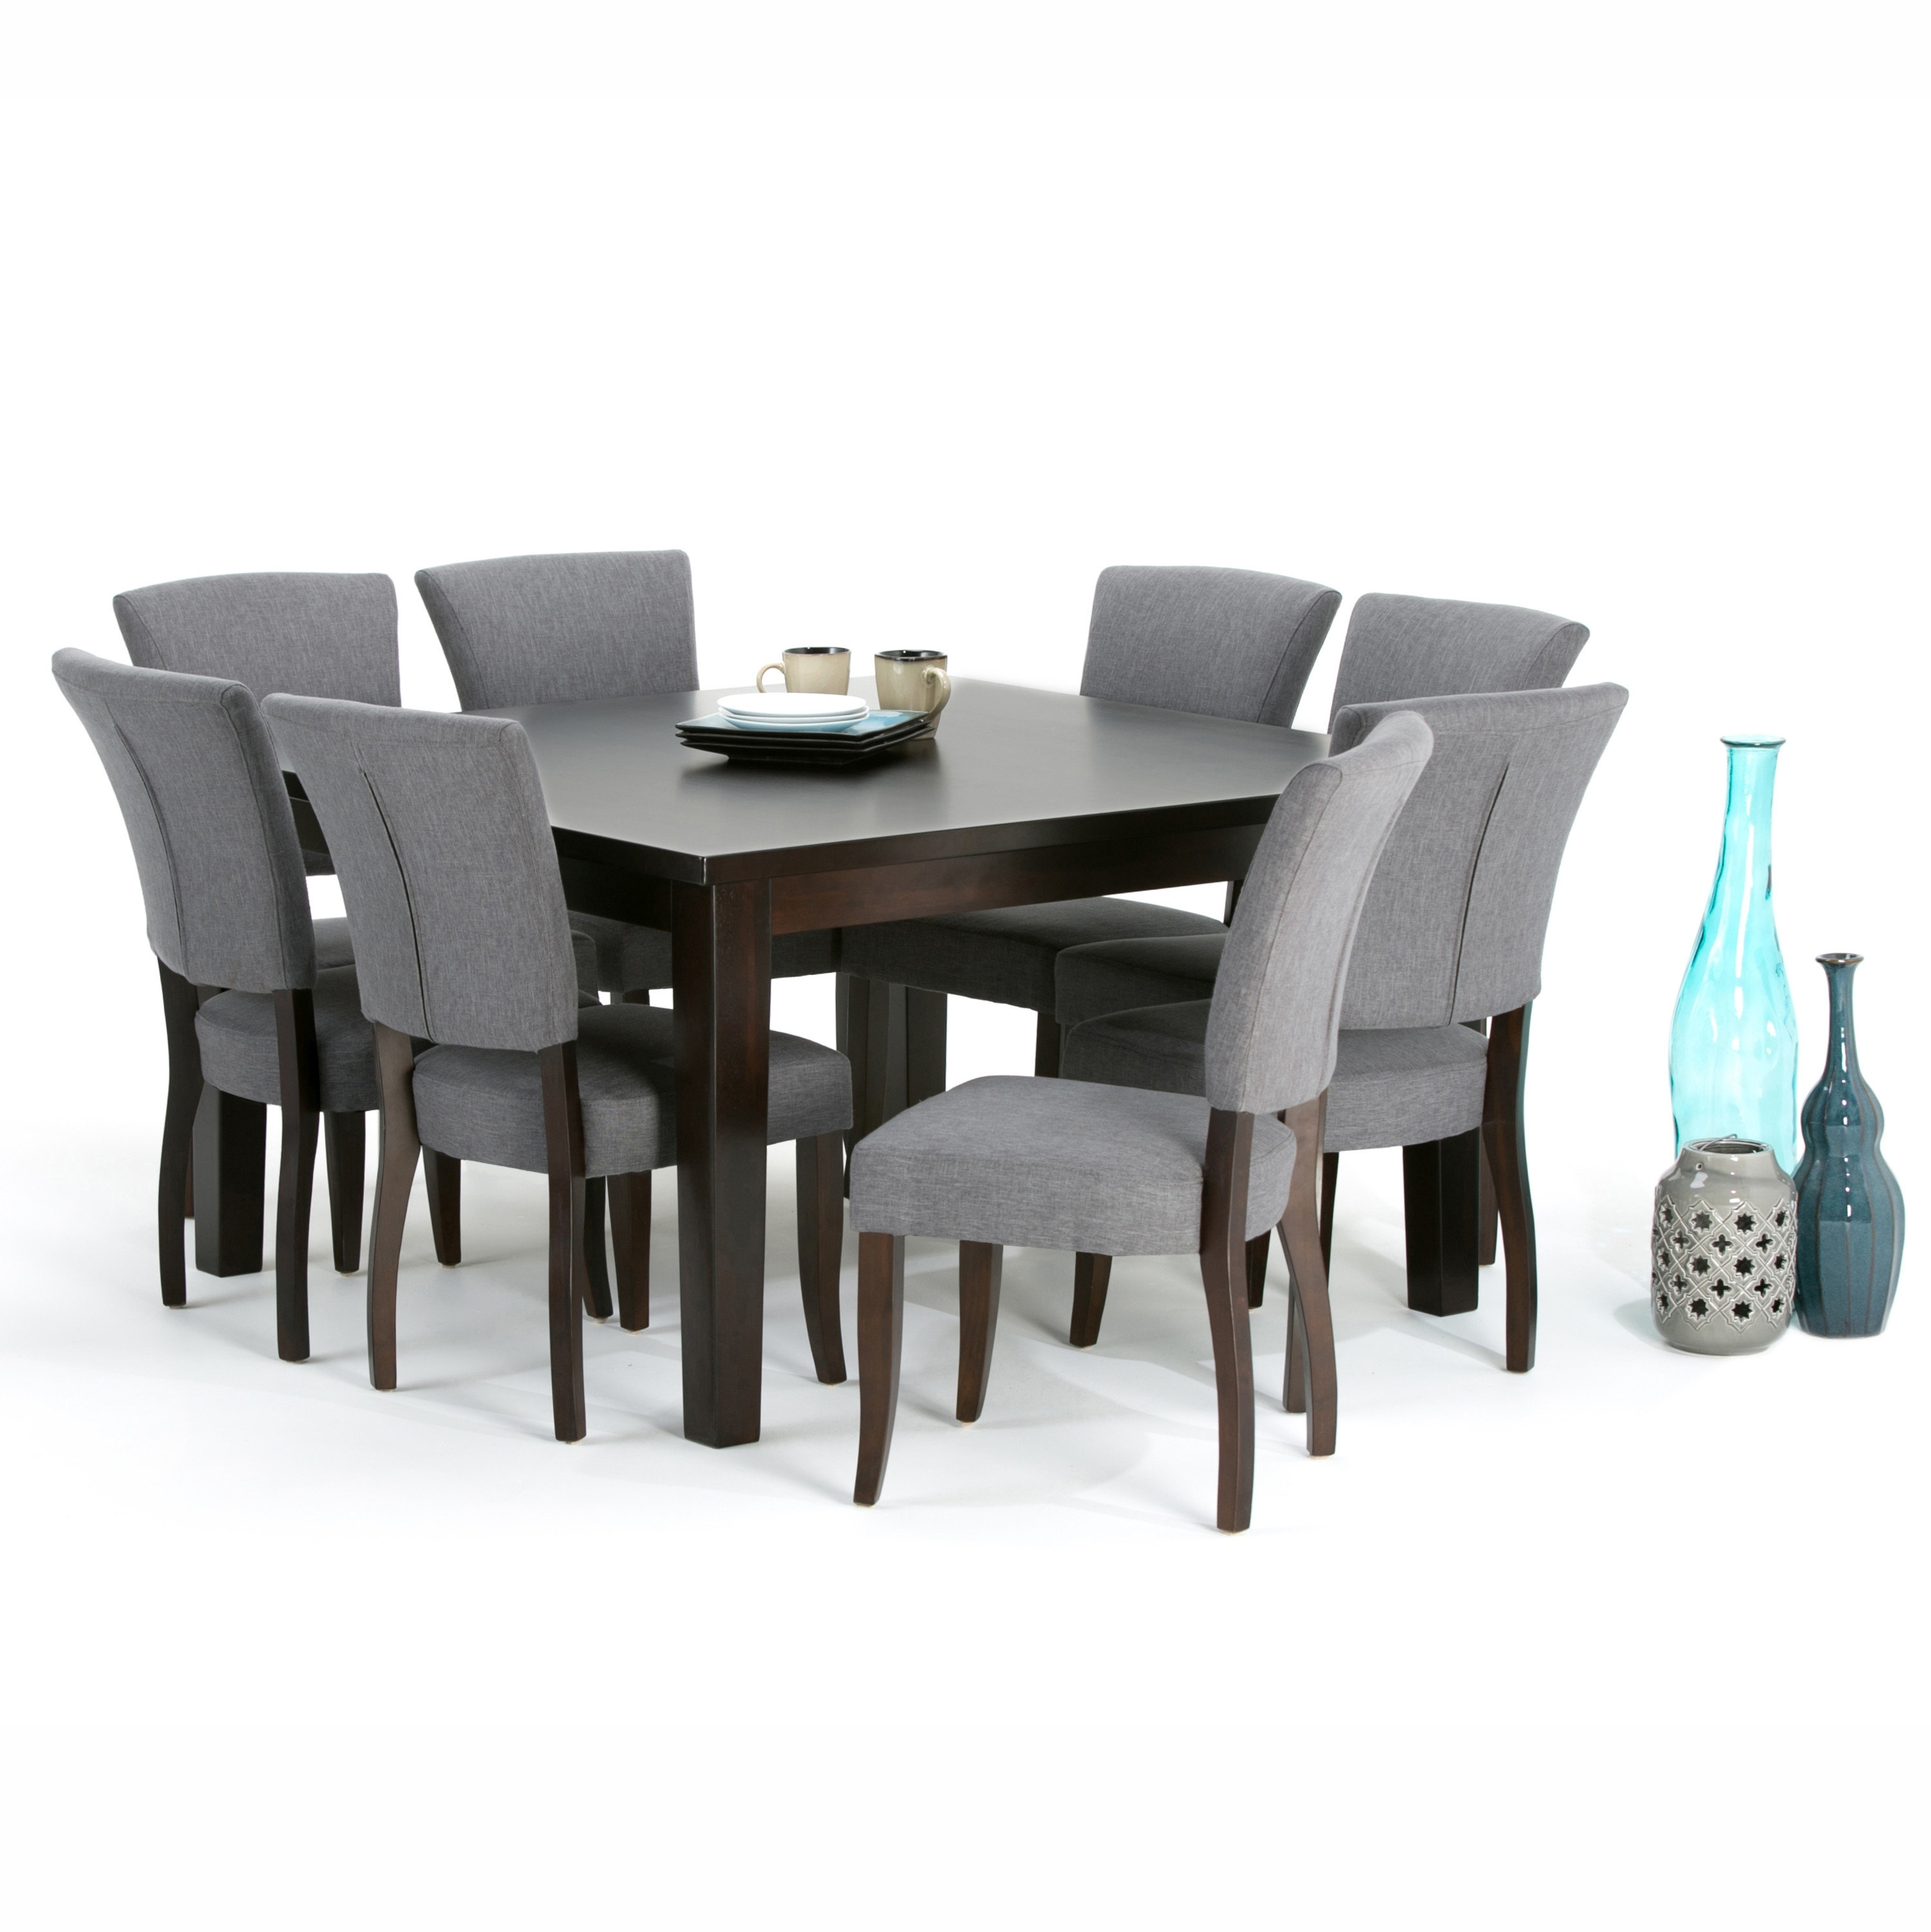 Simpli Home Joseph 9 Piece Dining Set | Wayfair Throughout Most Recent Walden 9 Piece Extension Dining Sets (Image 12 of 20)